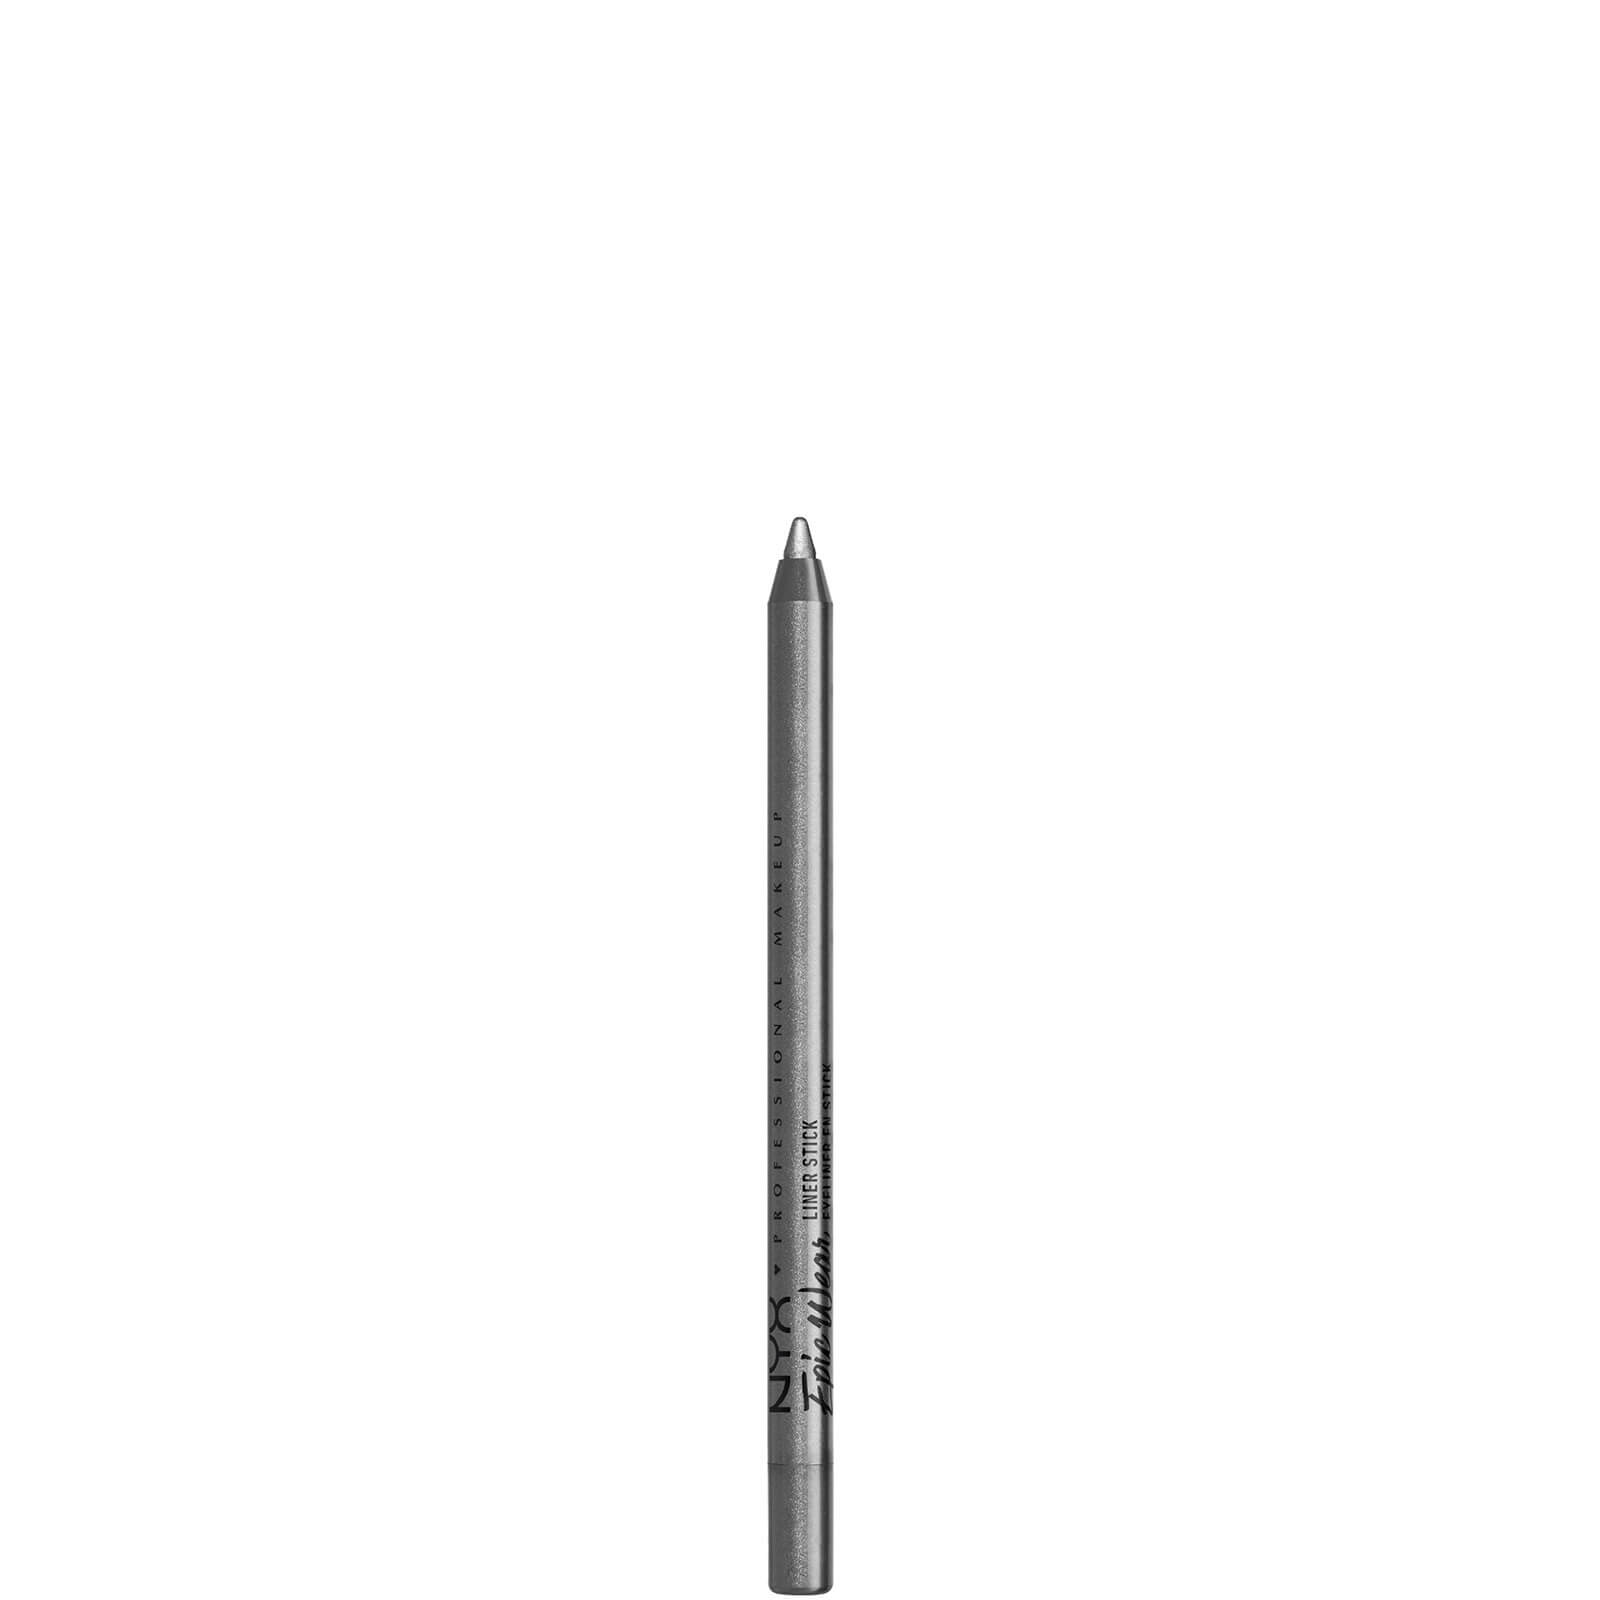 nyx professional makeup epic wear long lasting liner stick 5.44g (various shades) - silver lining